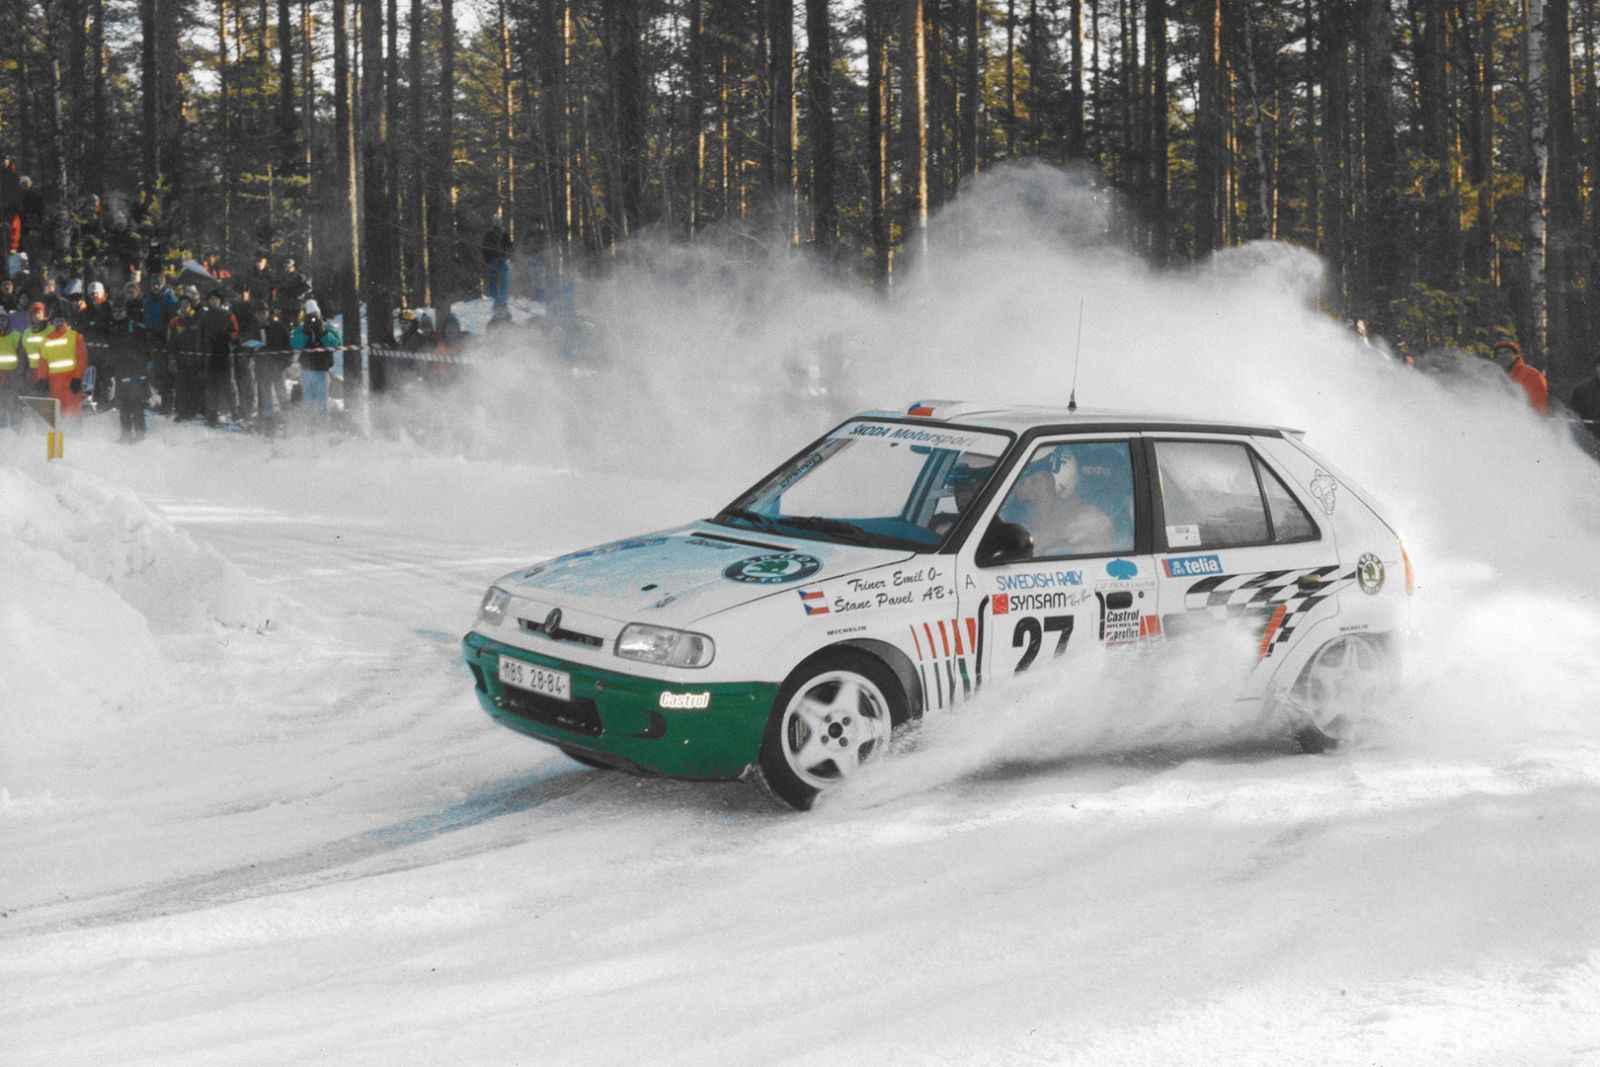 skoda-felicia-kit-car-1995-rally-sweden-triner